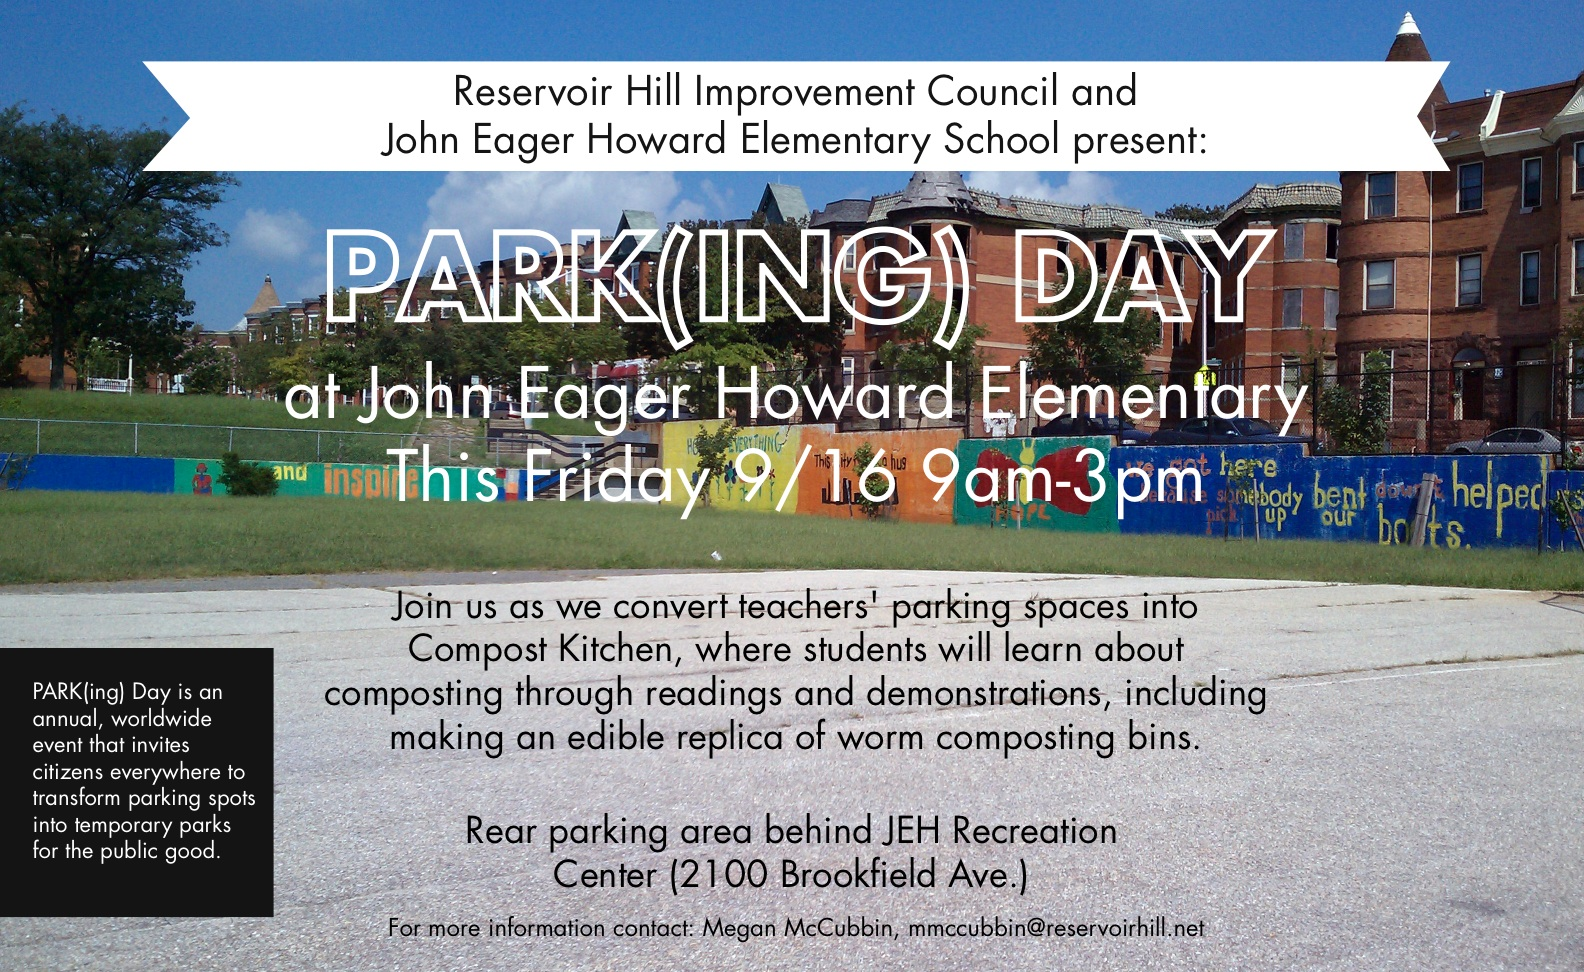 2011 Reservoir Hill Parking Day Flyer JPEG